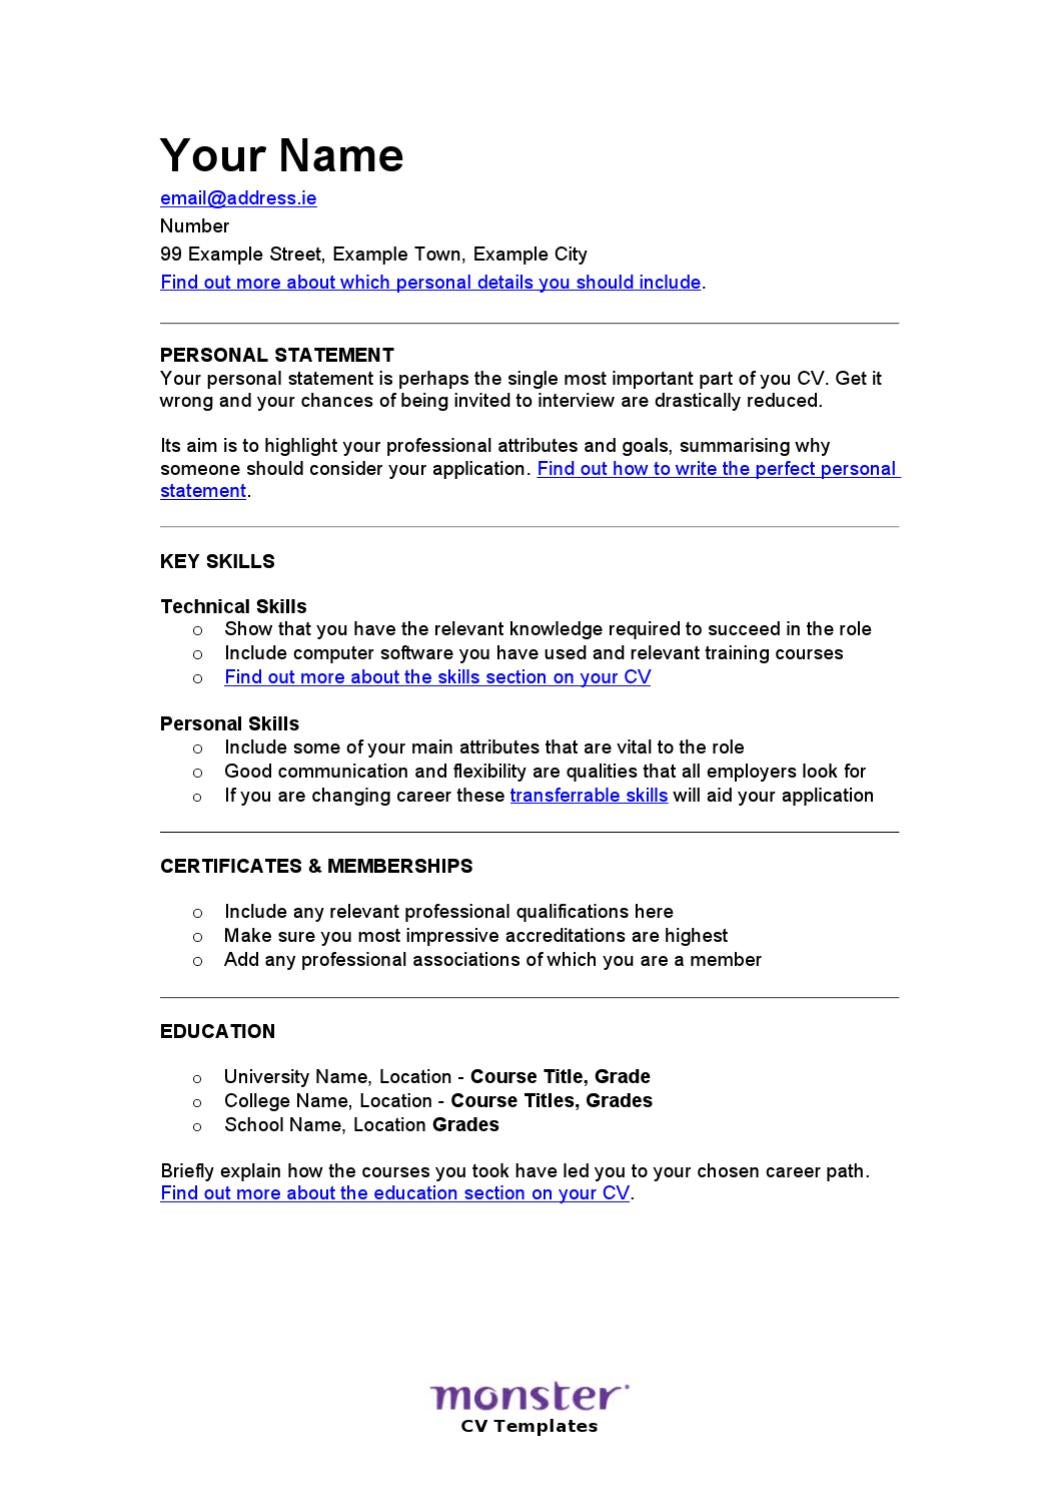 the classic skill based cv by monster worldwide cz sro issuu - Skills On Your Cv